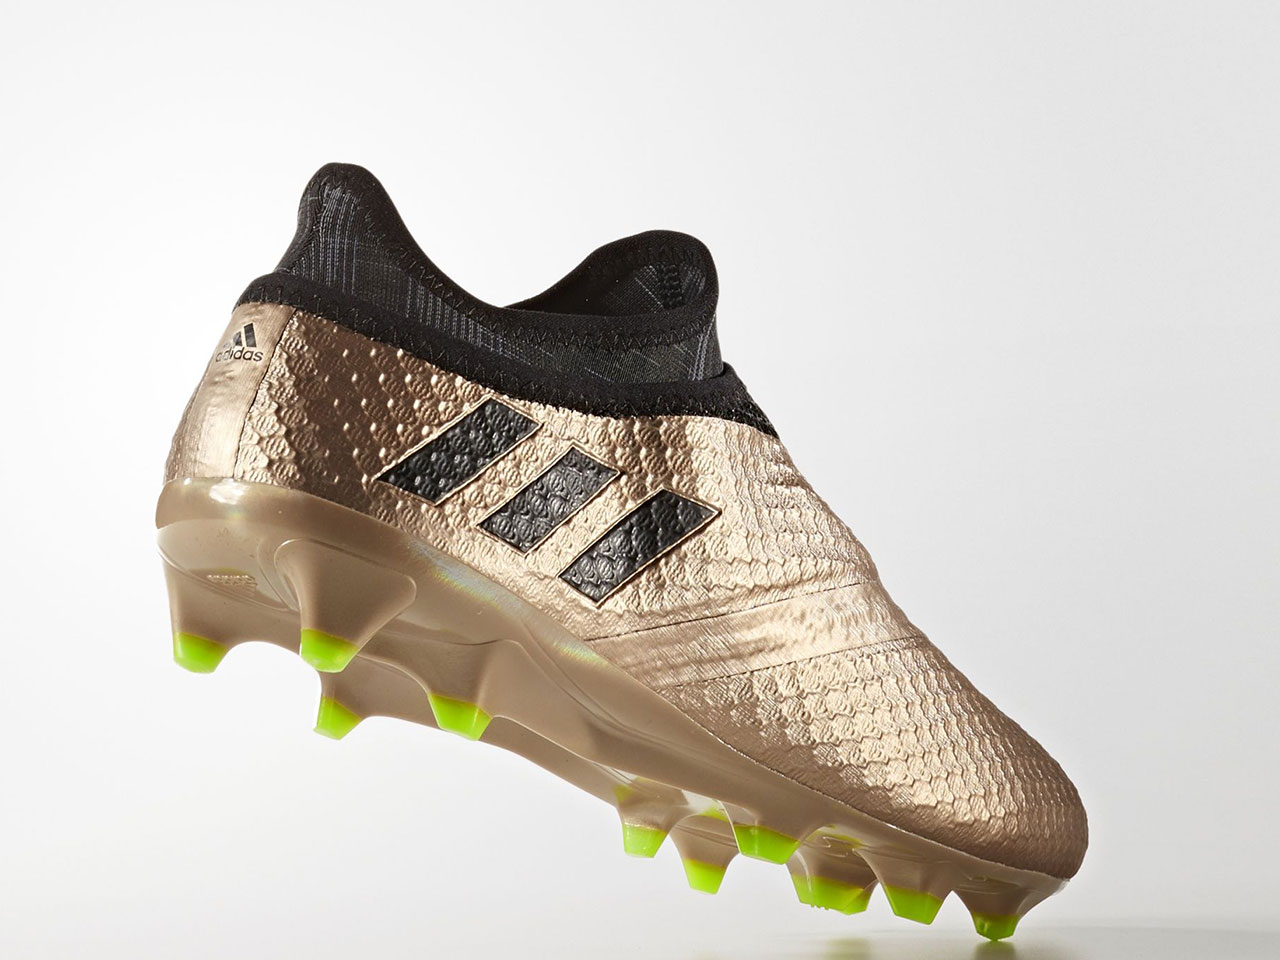 7f8be2840 Adidas. Messi 16+ Pureagility Ground Cleats